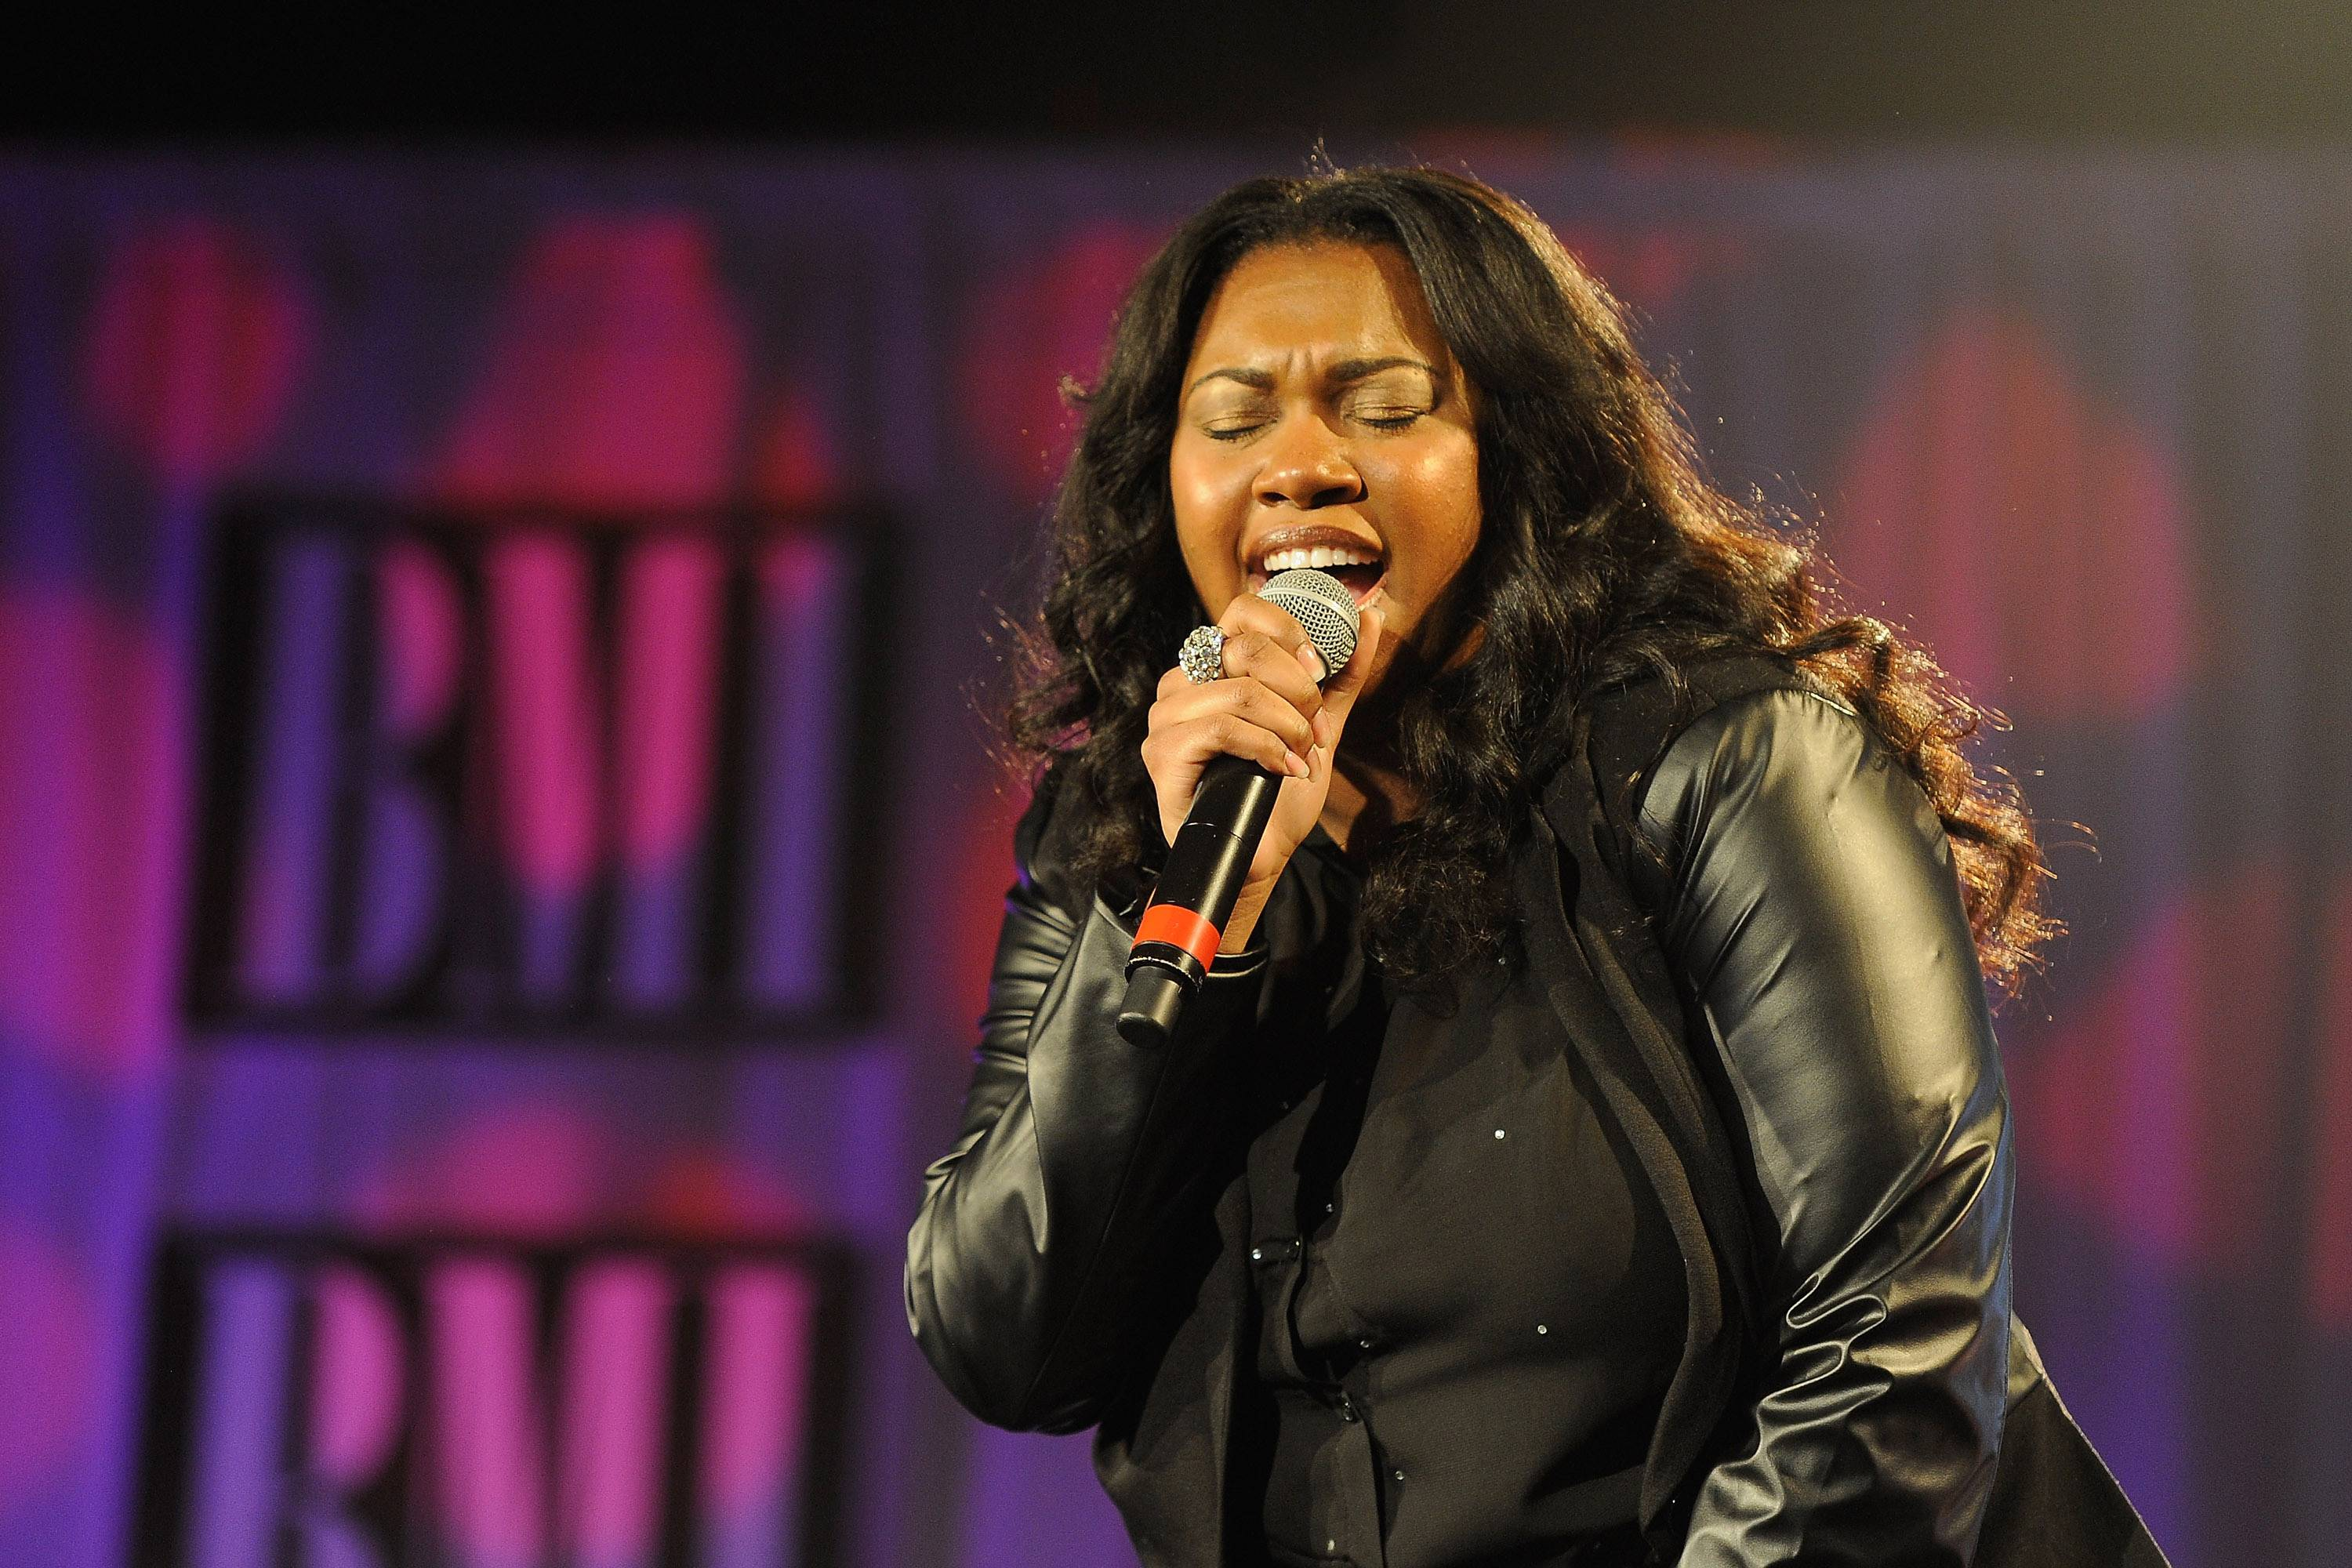 Whatchu Know About Ms. Knowles?  - Lisa Knowles rocks the stage with her soulful performances that provide a dose of Southern flair. She and the Brown Singers have and continue to create tons of great uplifiting music together. (Photo: Erika Goldring/Getty Images)